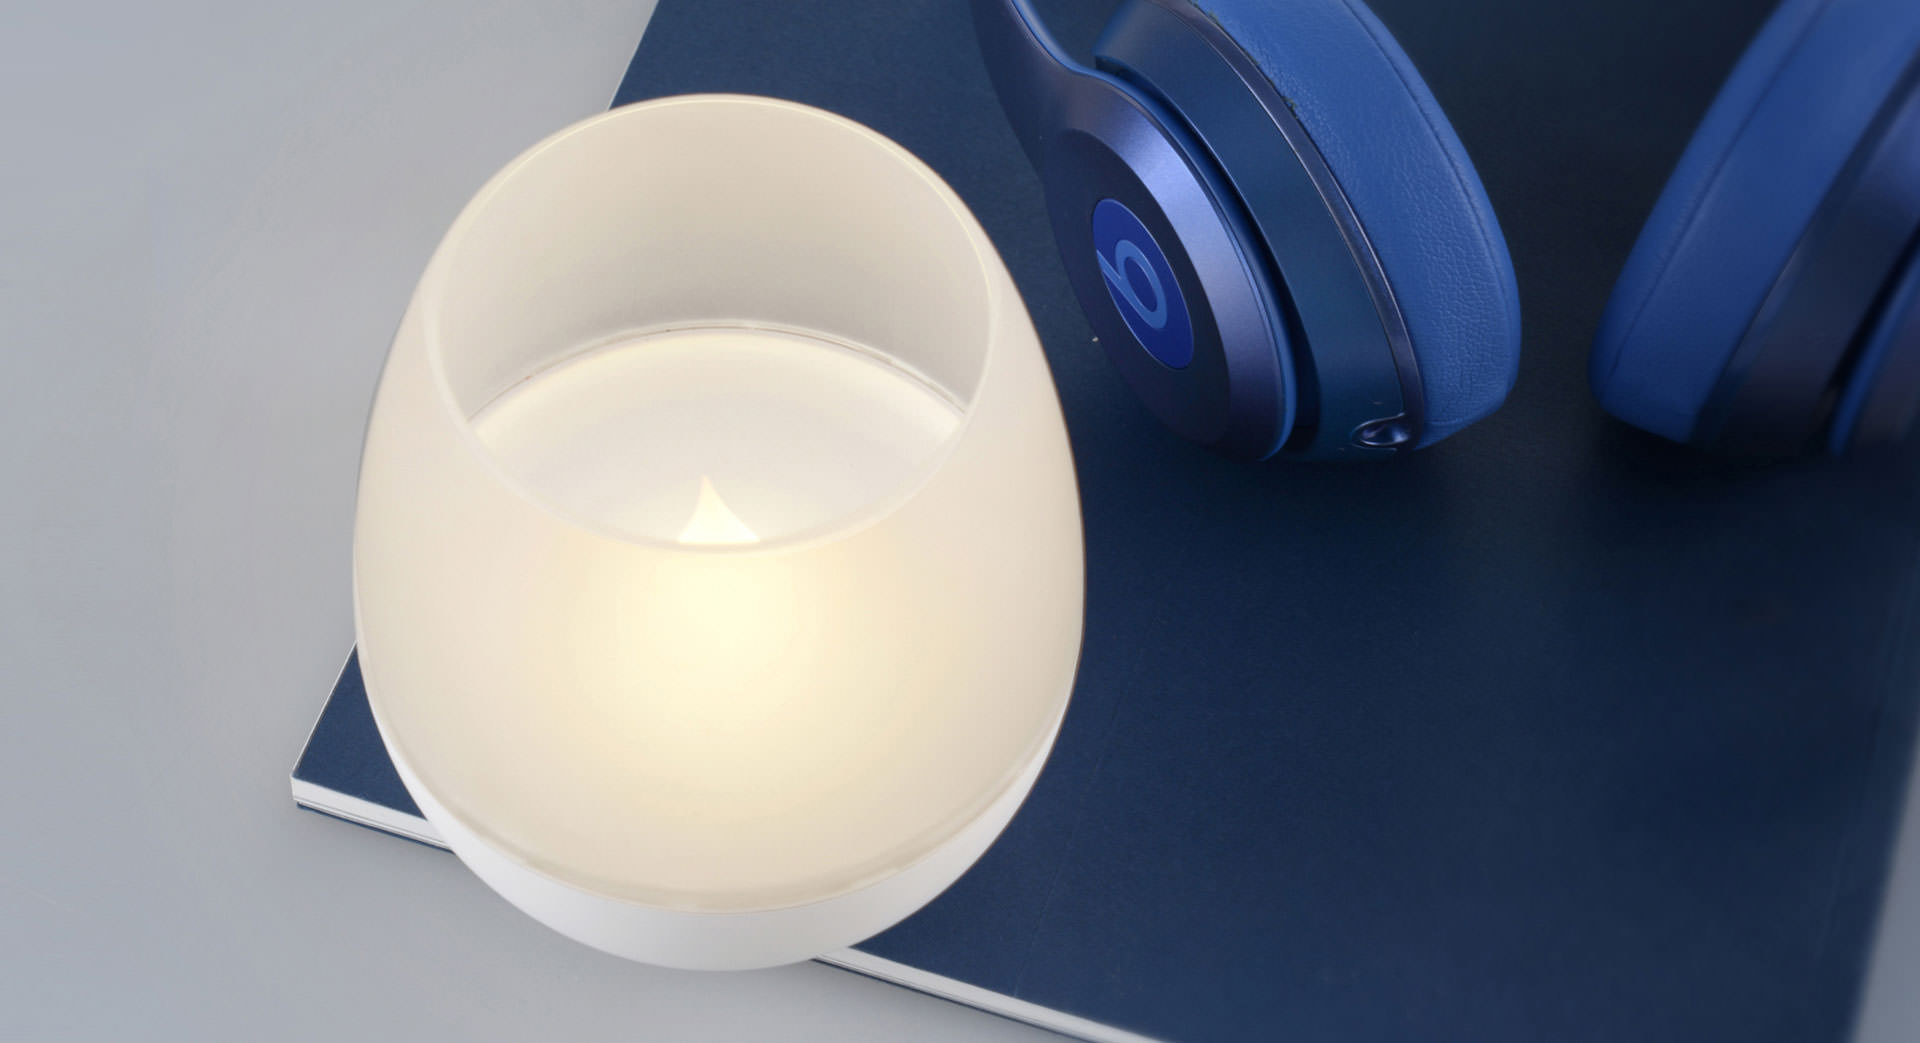 opple candle night lamp